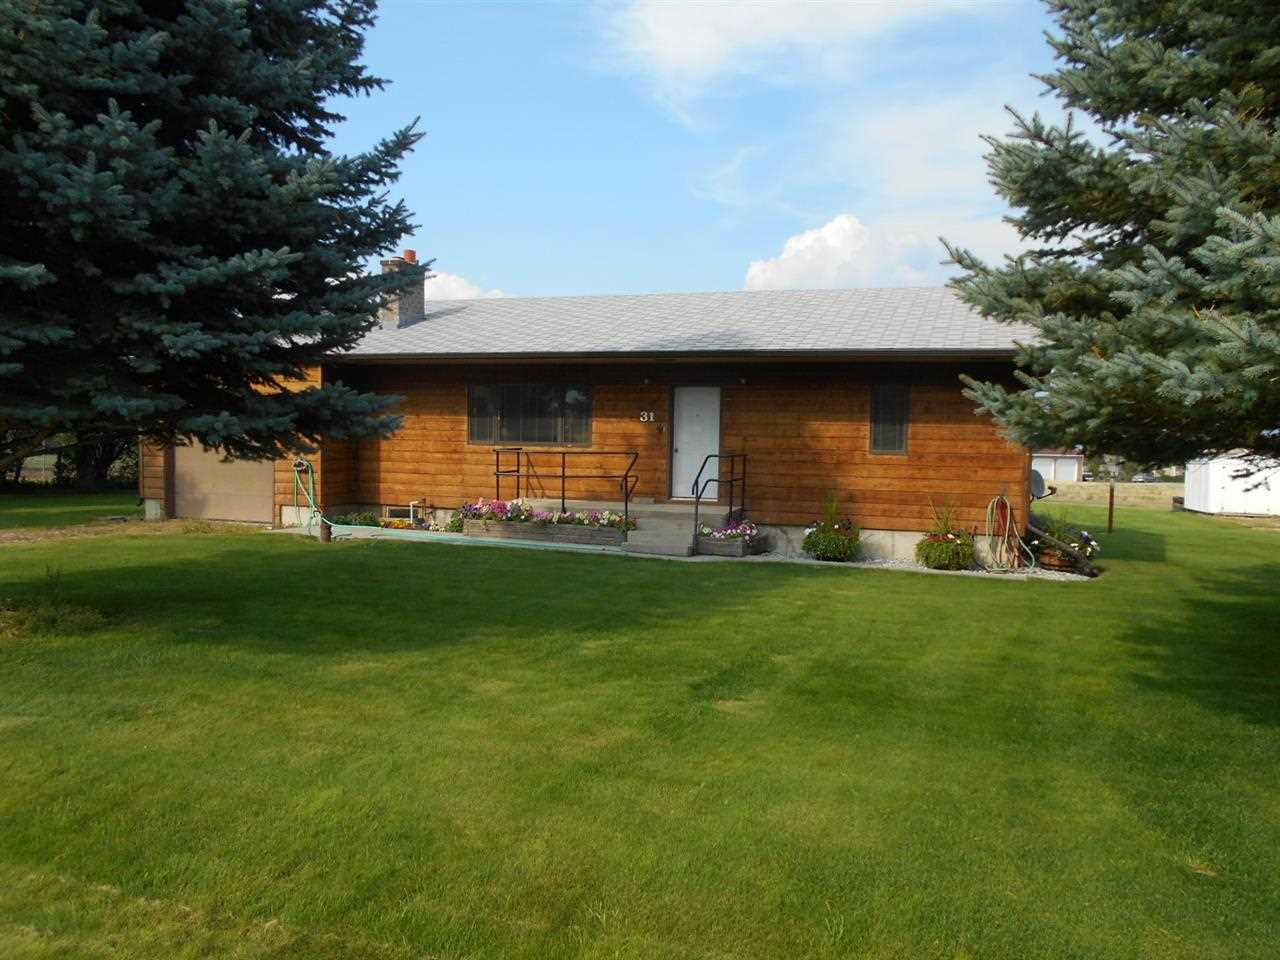 31 Manor Dr, Townsend, MT 59644